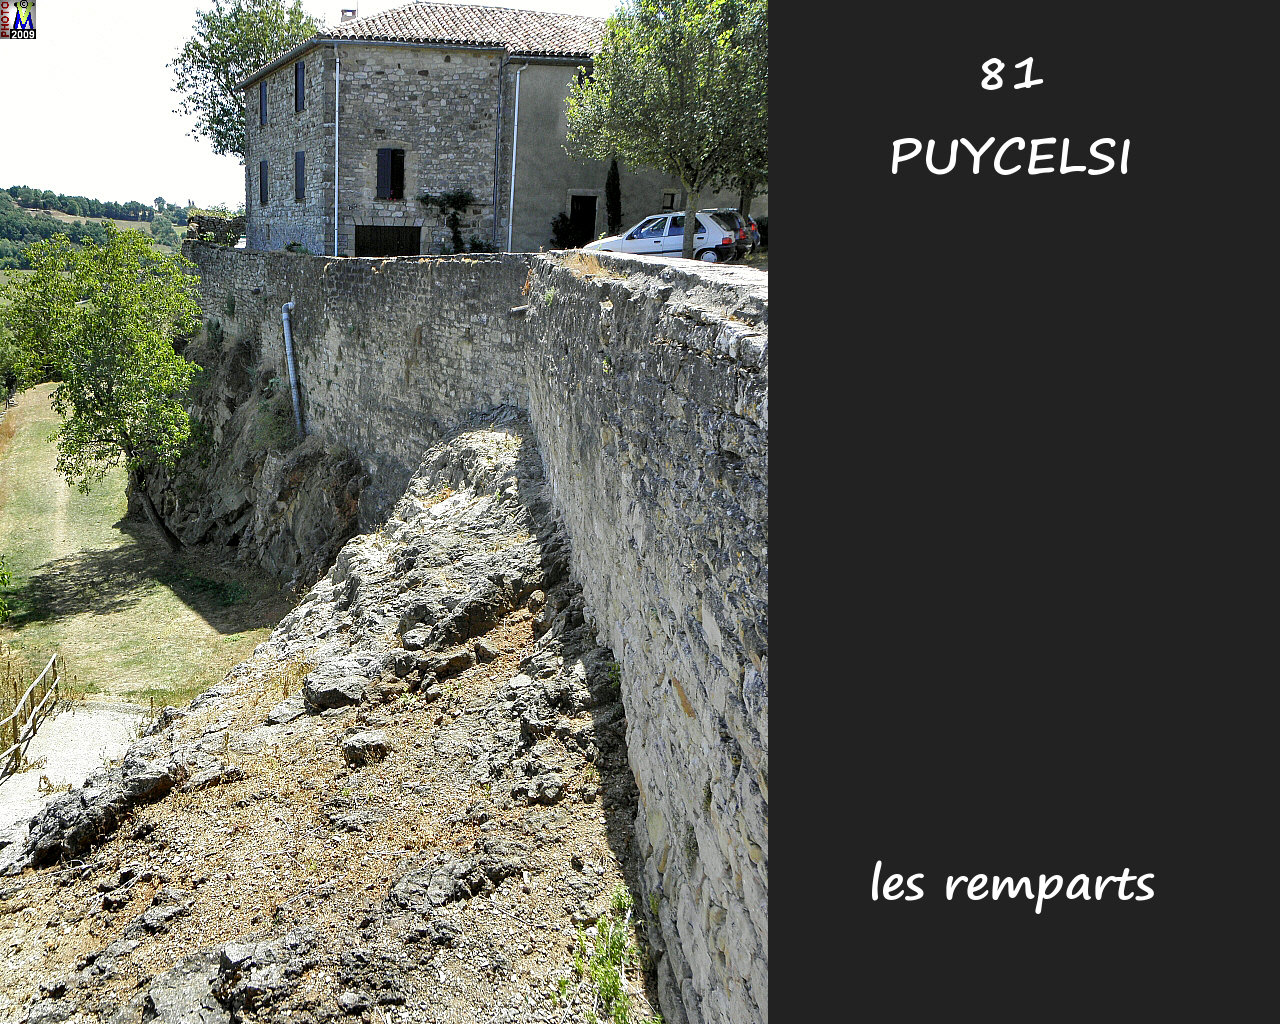 81PUYCELSI_remparts_112.jpg